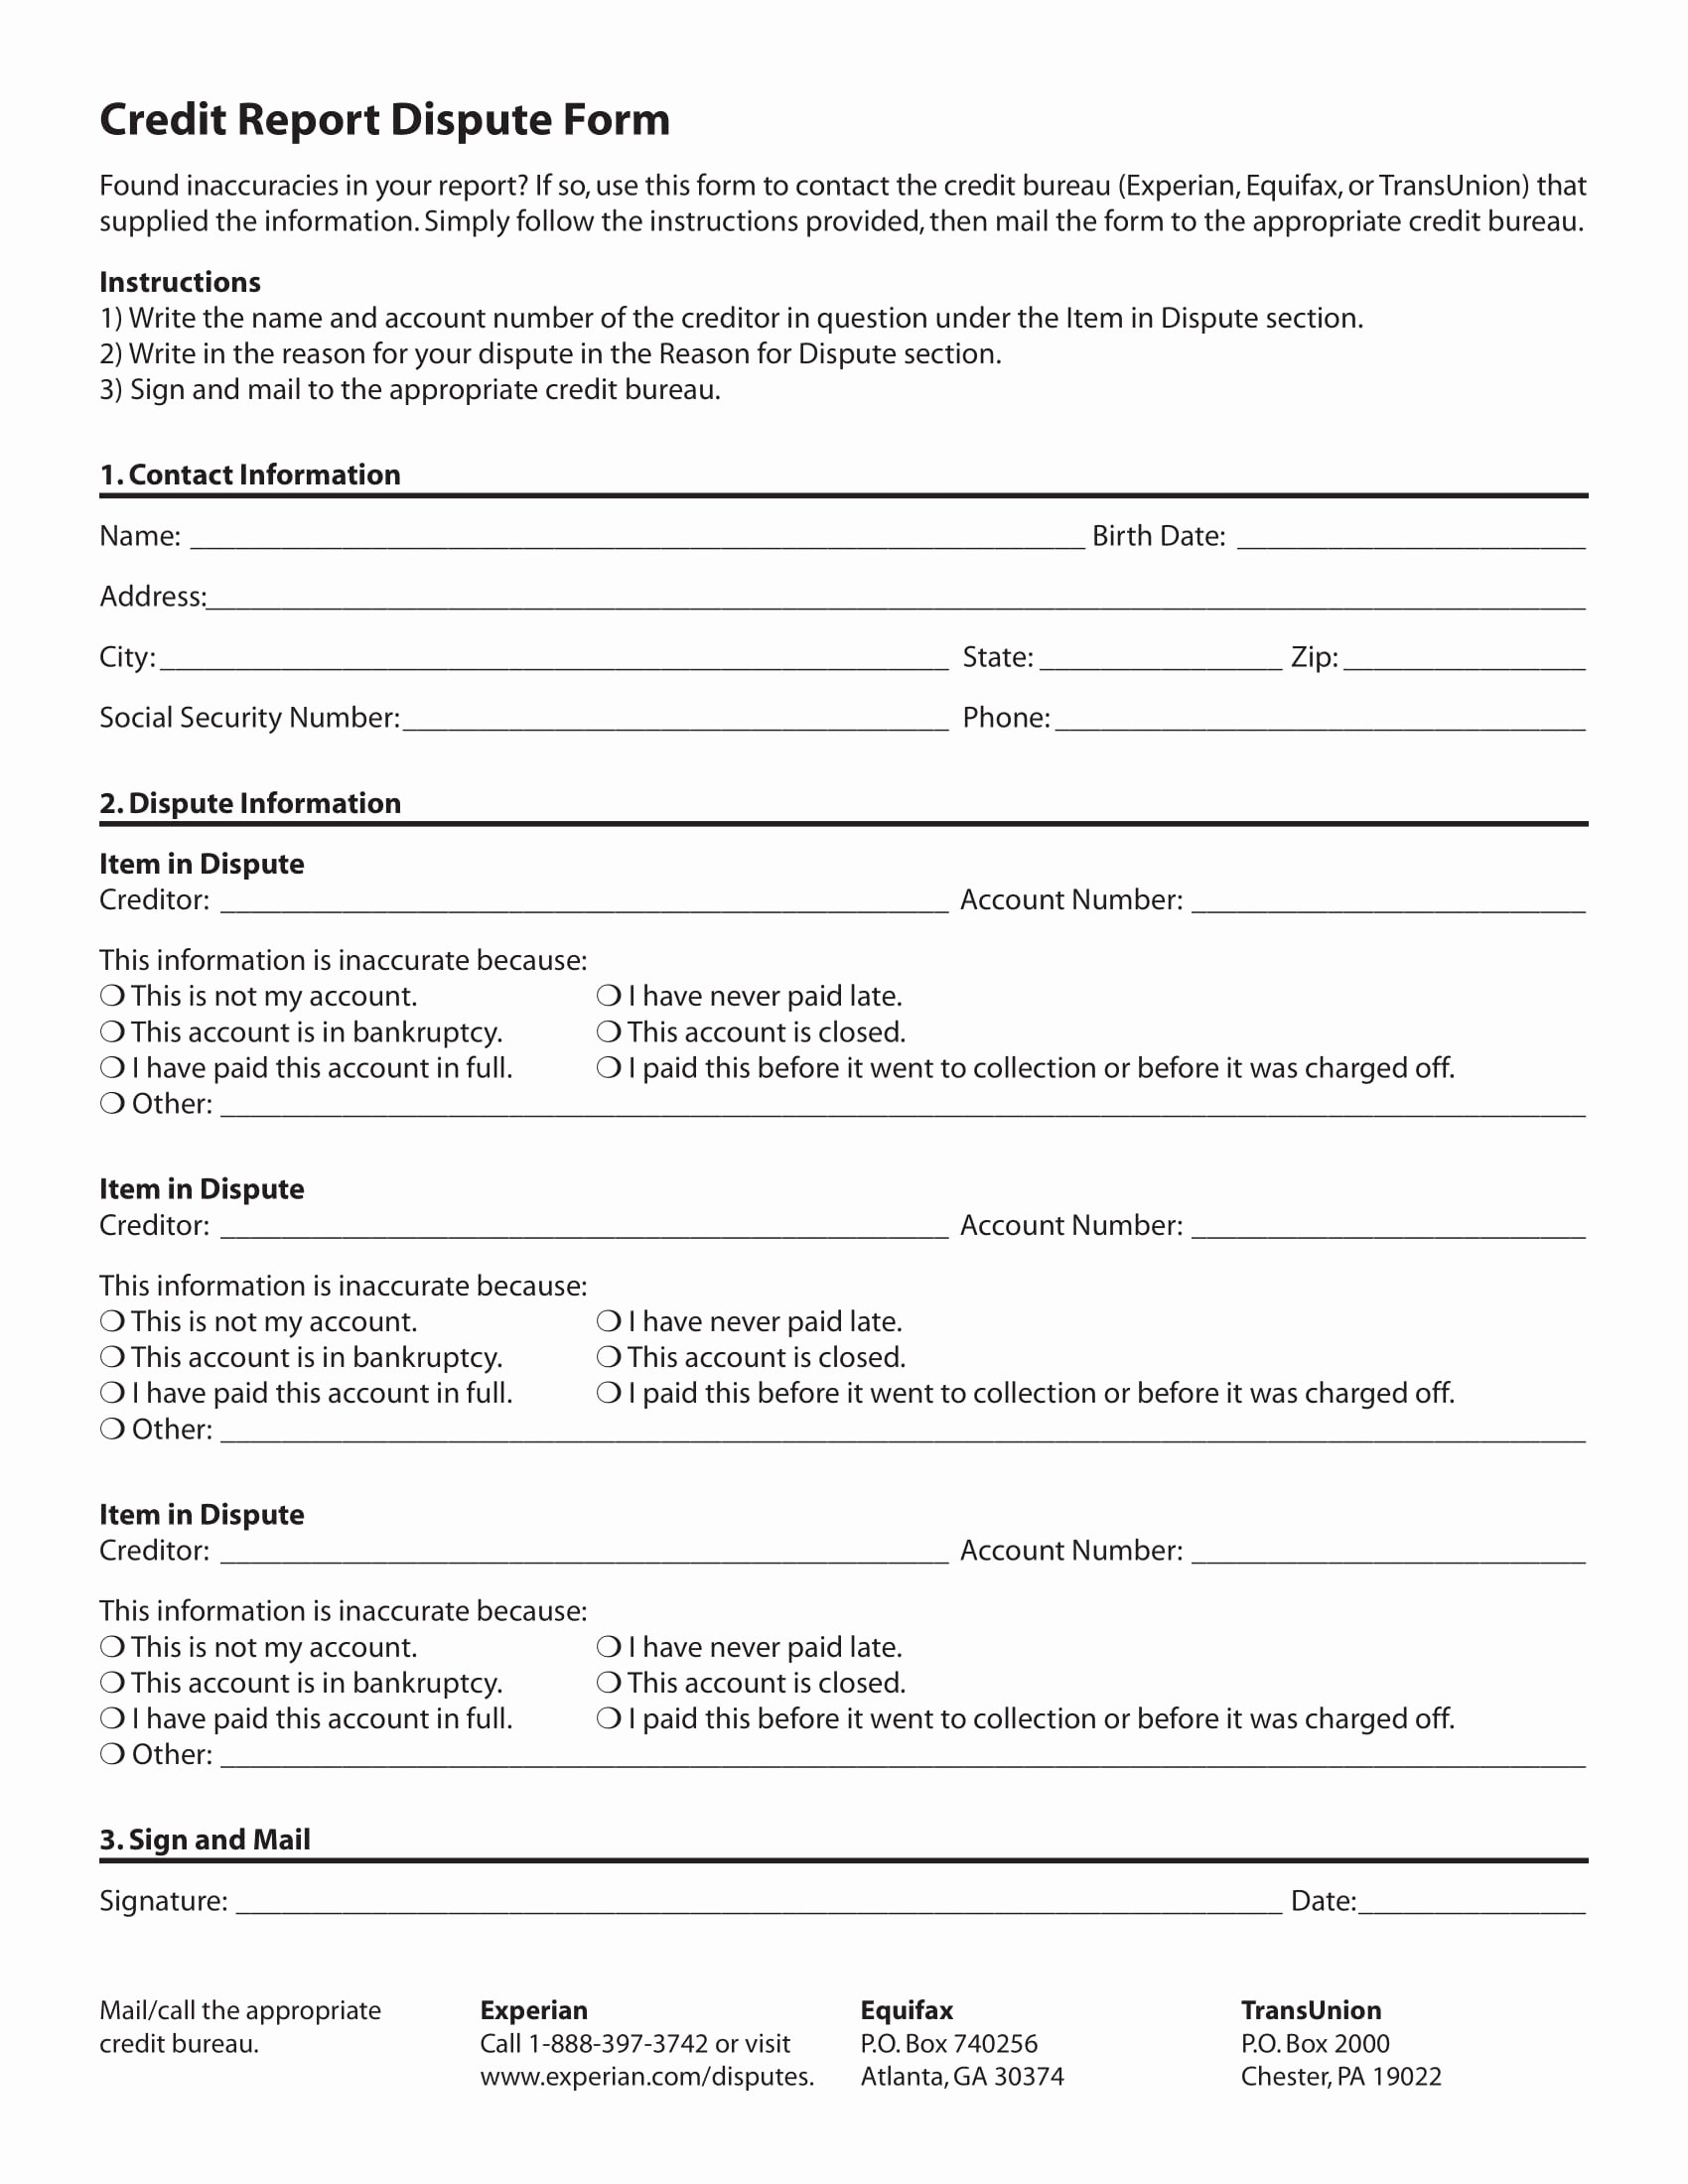 Fake Credit Report Template Best Of 12 Credit Report forms Pdf